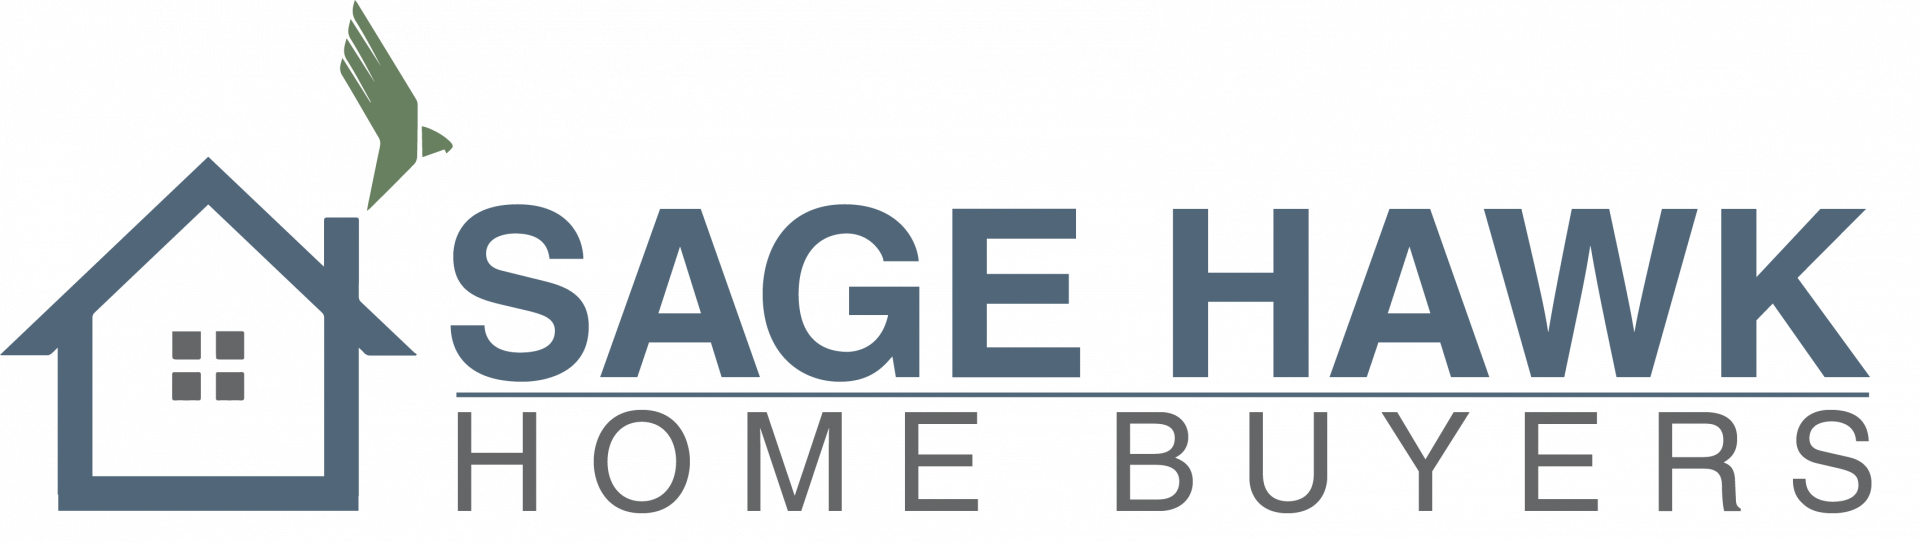 Sage Hawk Home Buyers  logo